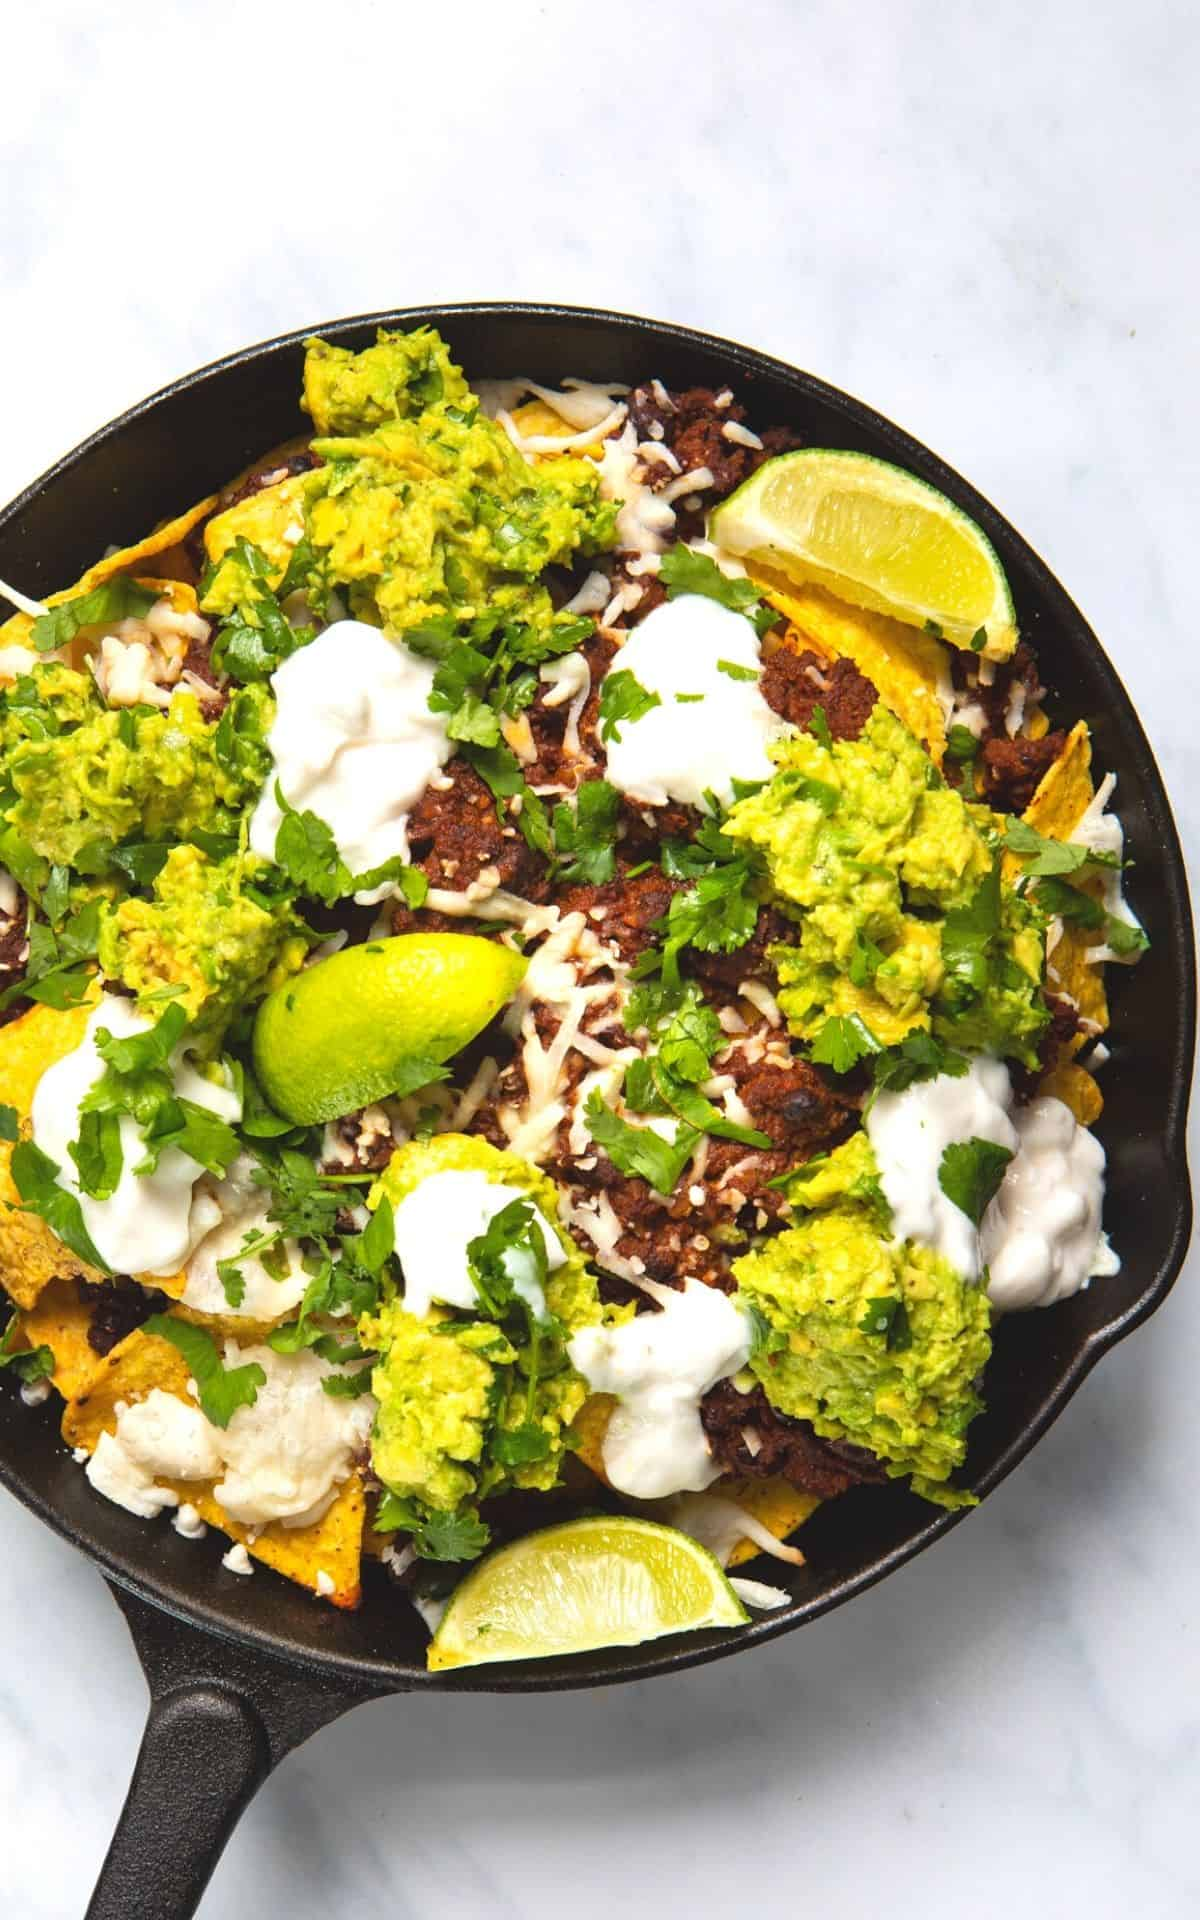 loaded vegan mince nachos in a skillet pan topped with guacamole and cheese